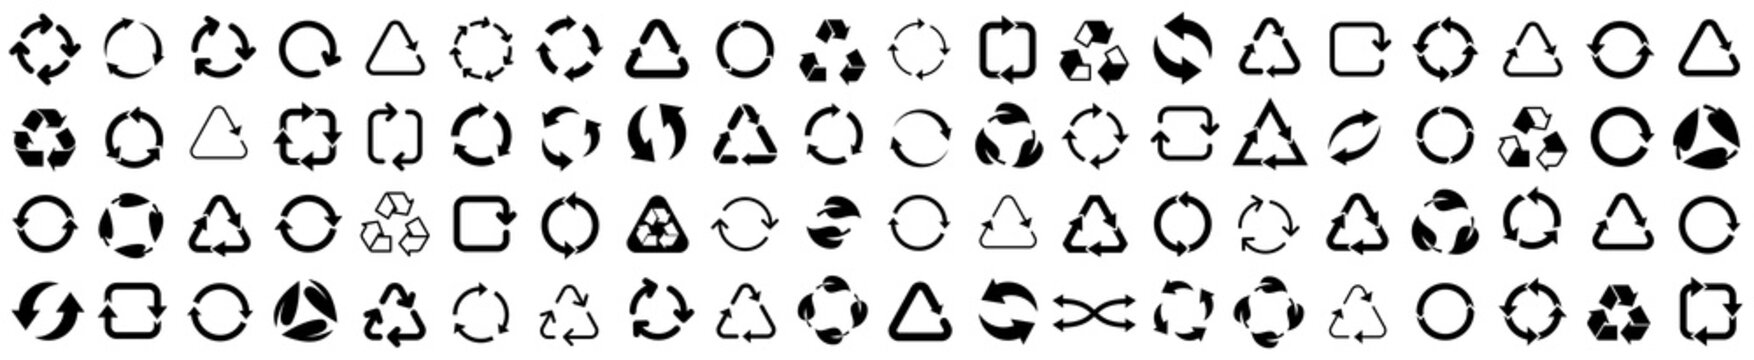 Biodegradable, compostable, recyclable icon set. Set of arrow recycle. Mega set of recycle icon. Green recycling and rotation arrow icon pack.Vector illustration